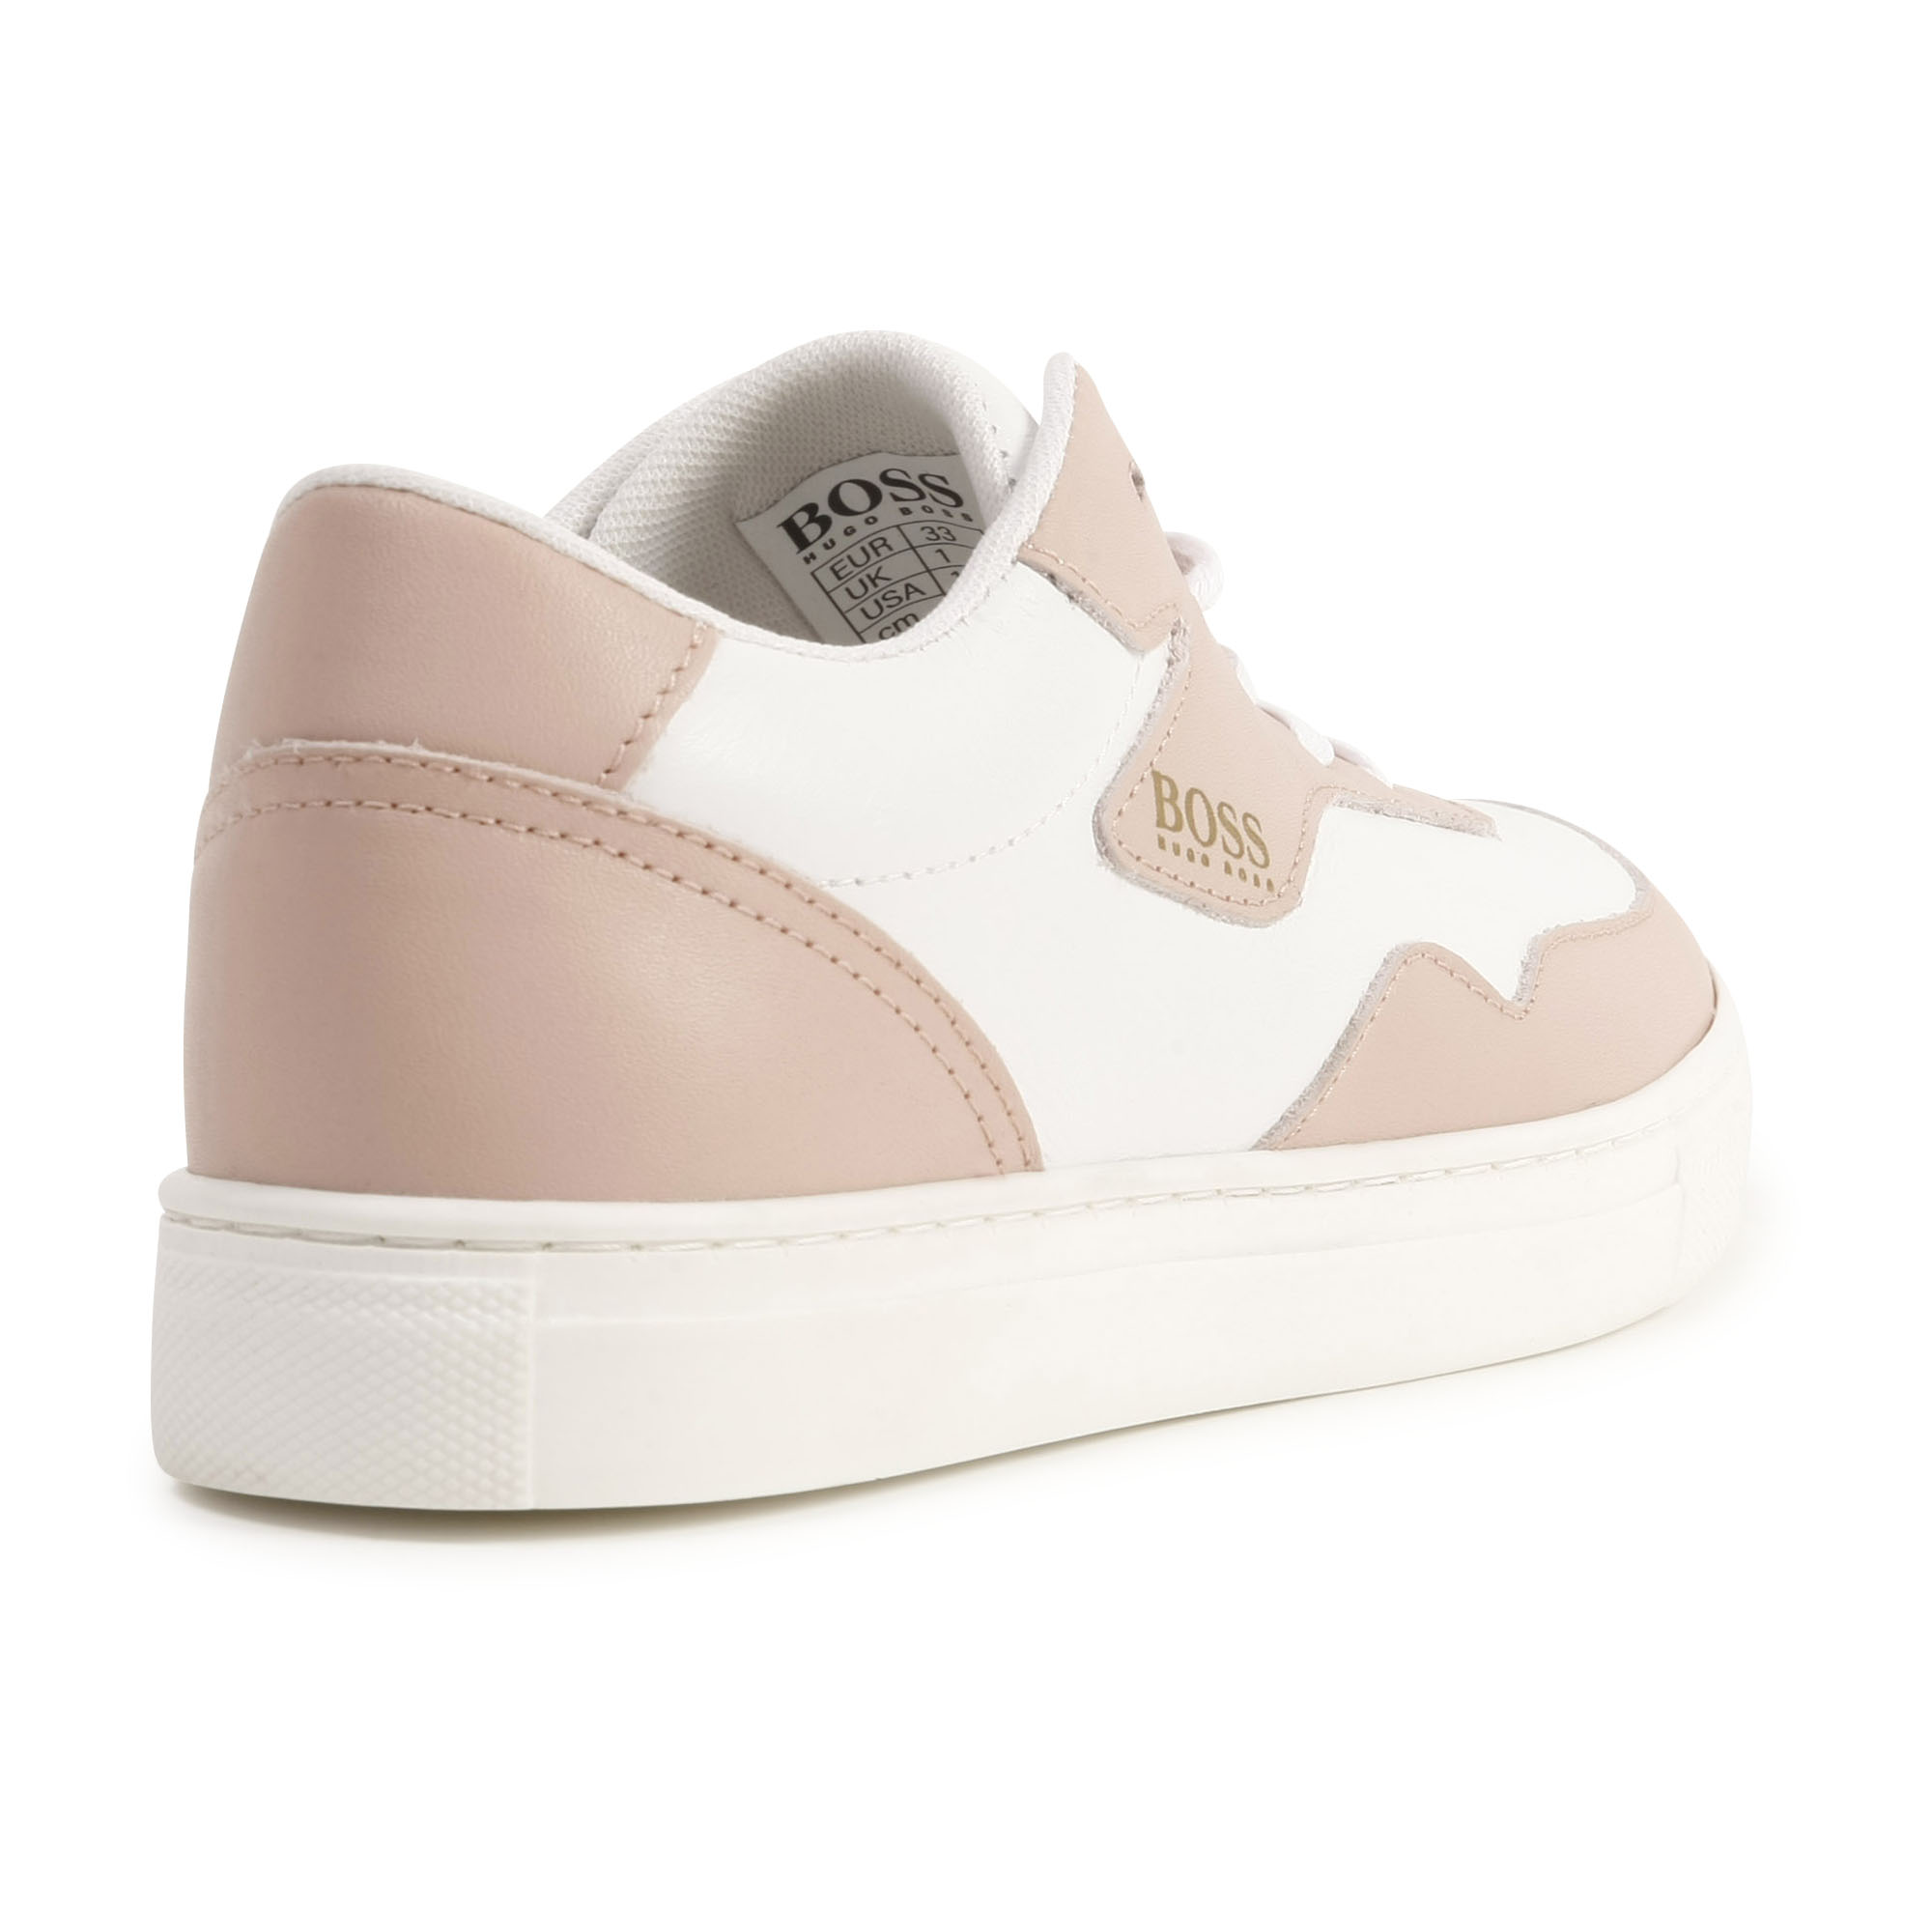 Two-tone leather sneakers BOSS for GIRL